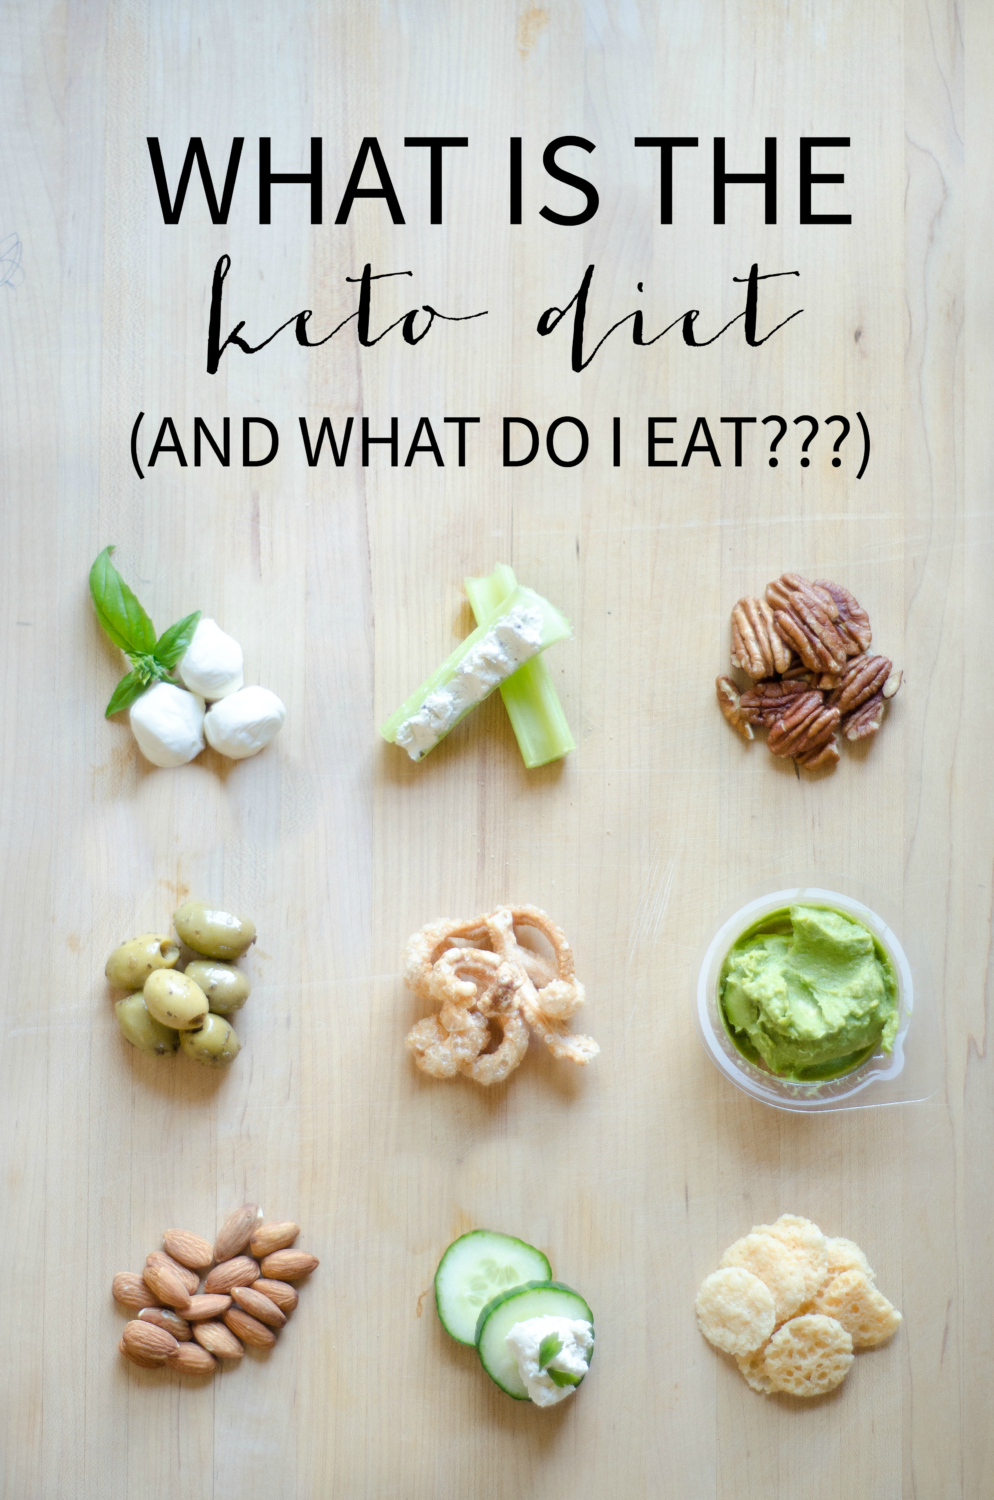 If you've been wondering, what is the keto diet??, this blog post will likely answer your questions!